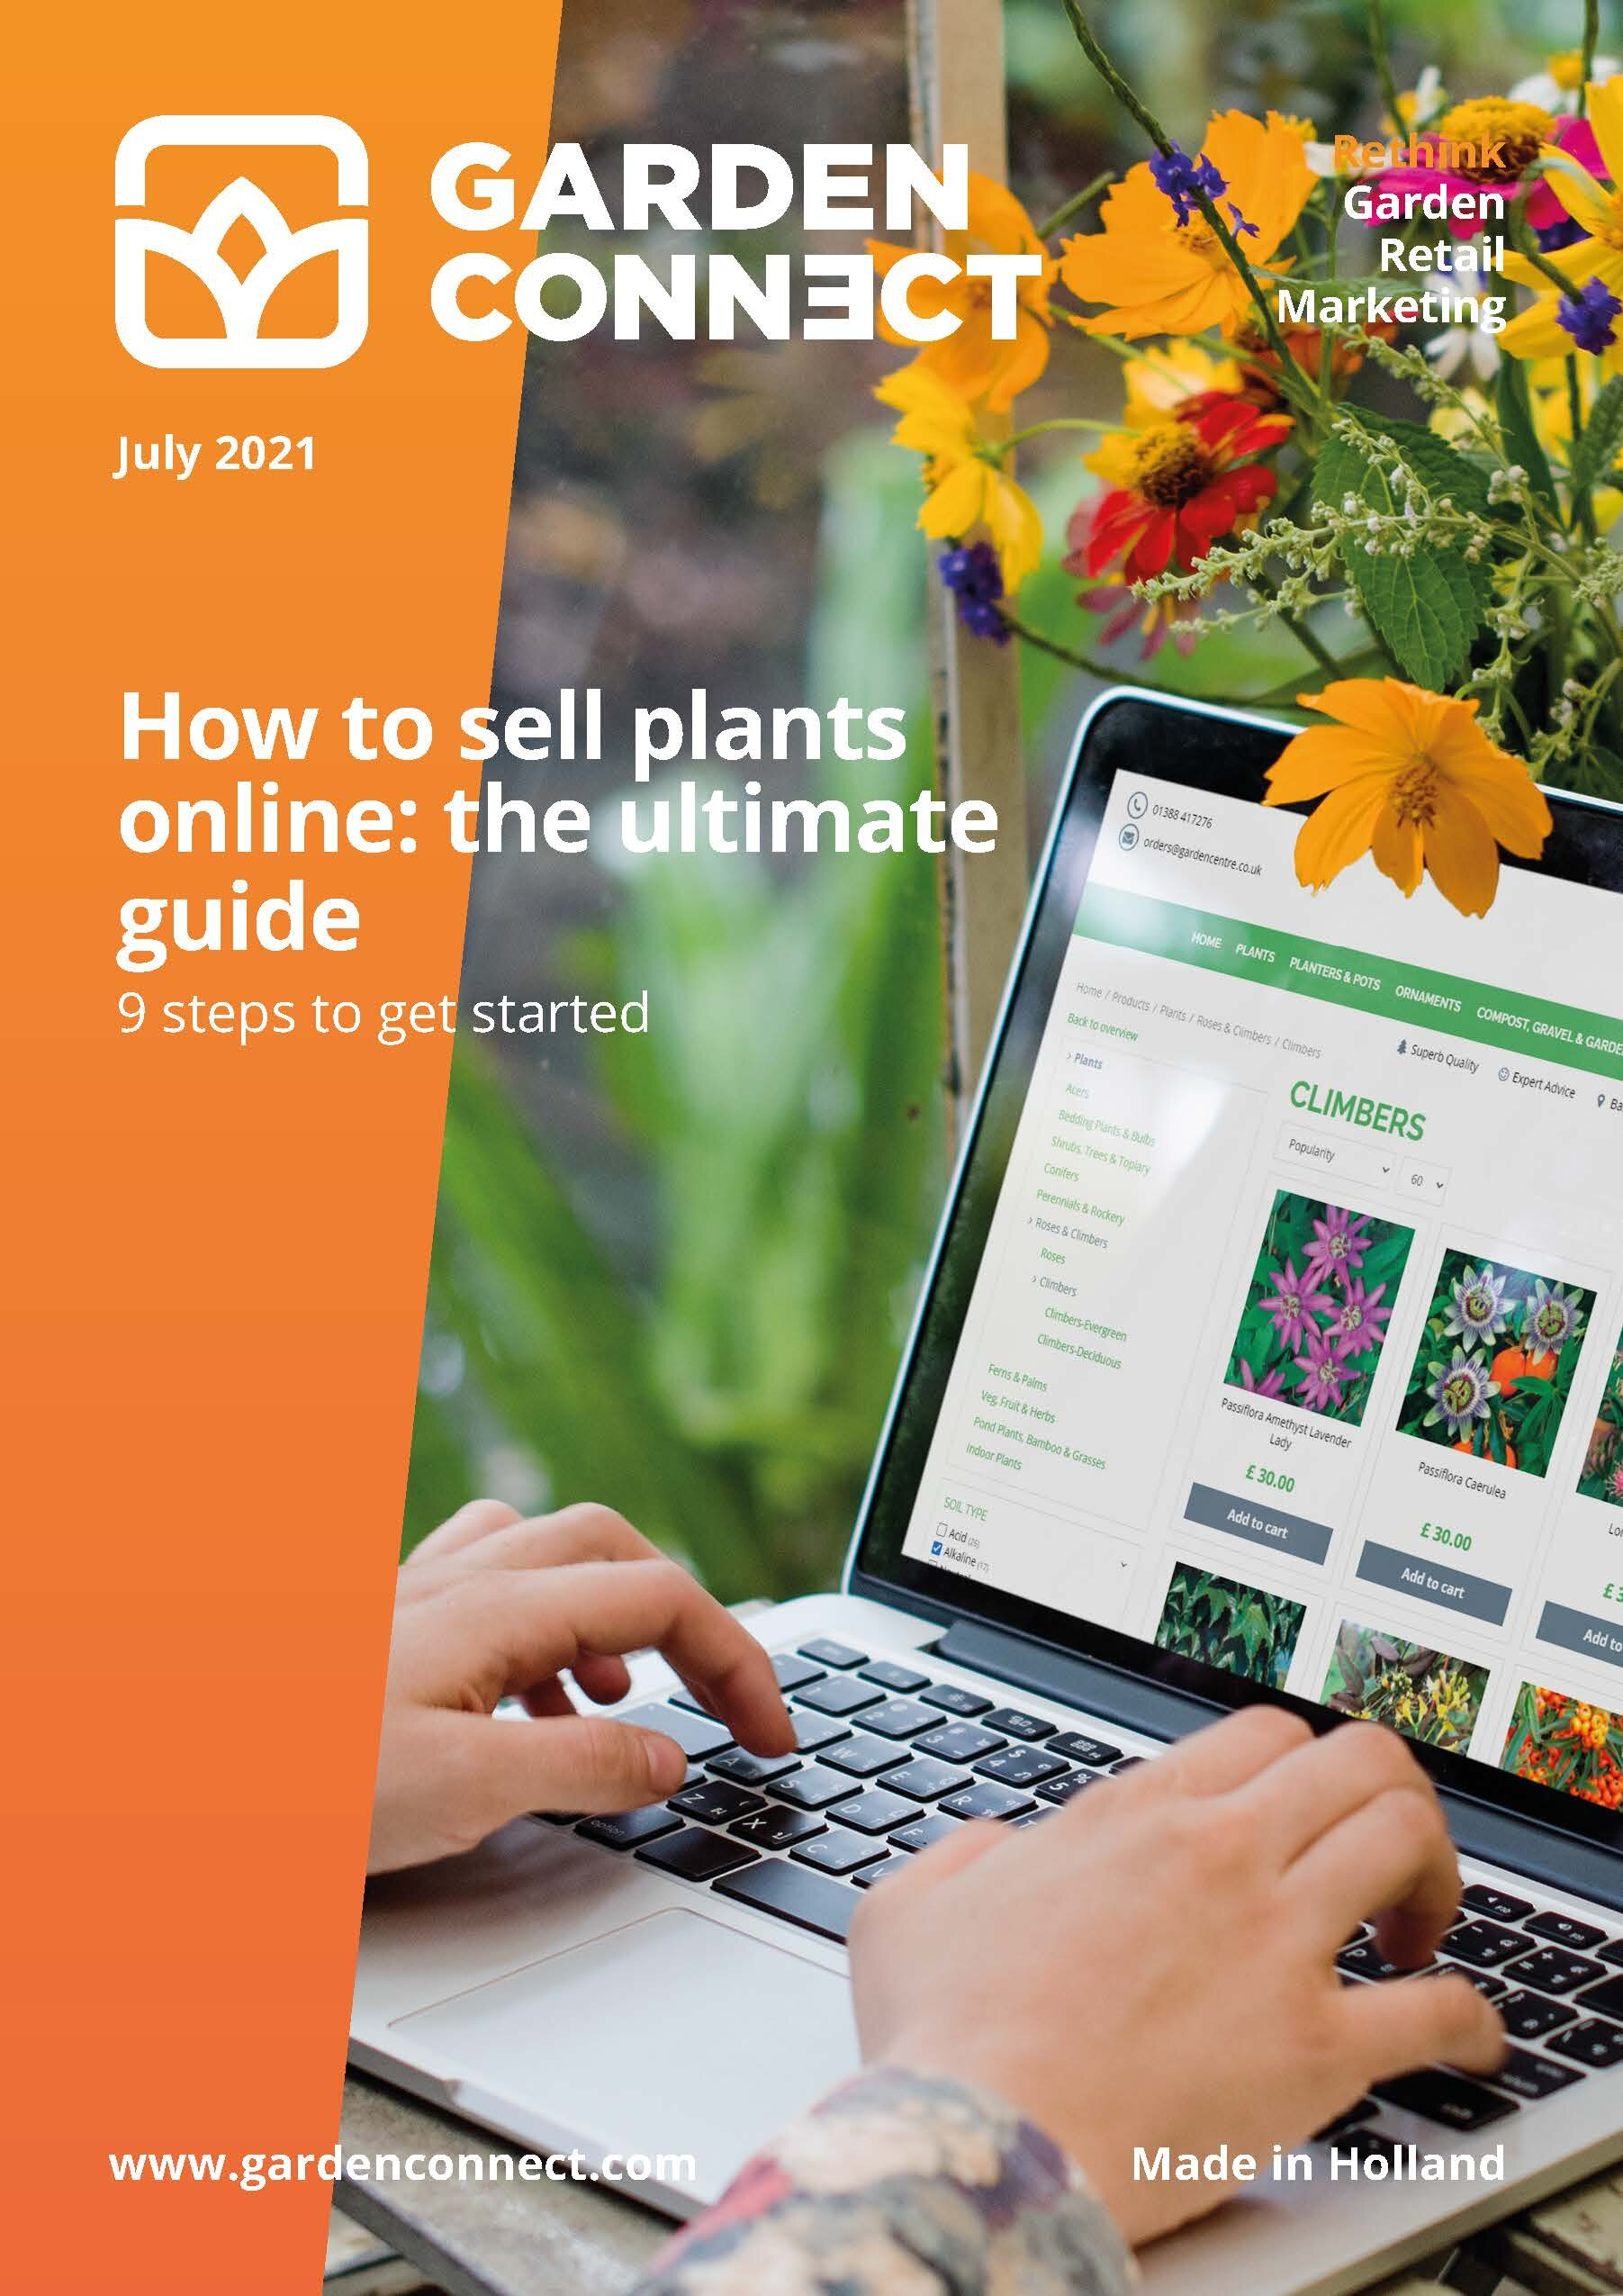 How to sell plants online: the ultimate guide